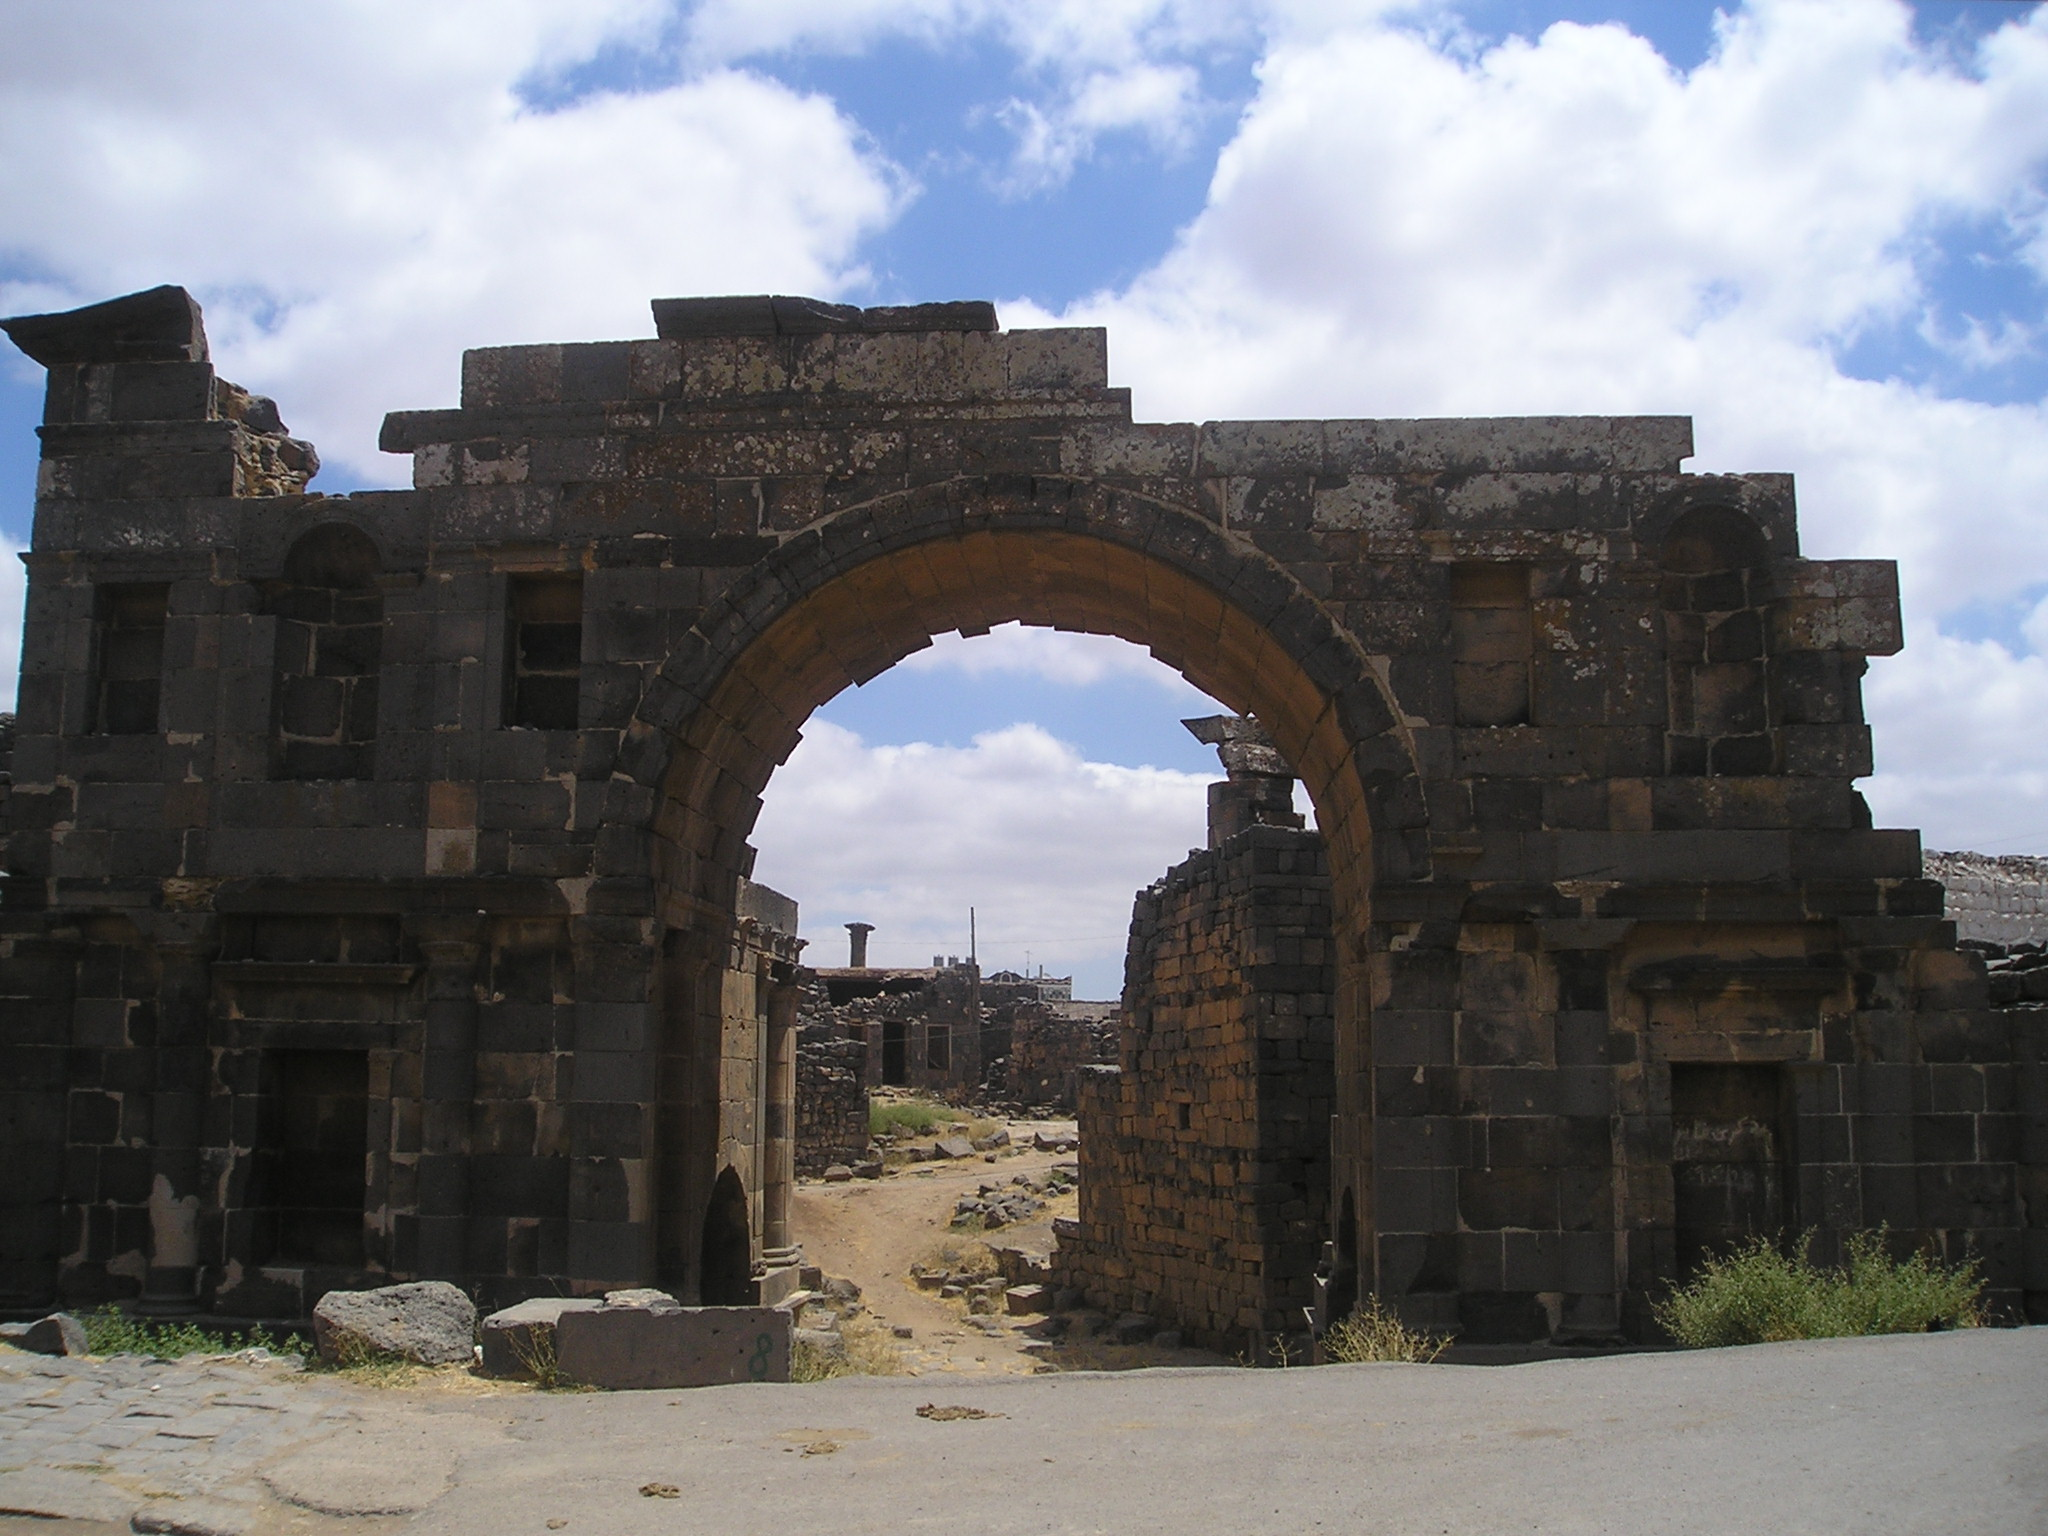 Bosra-NabateanArch.jpg